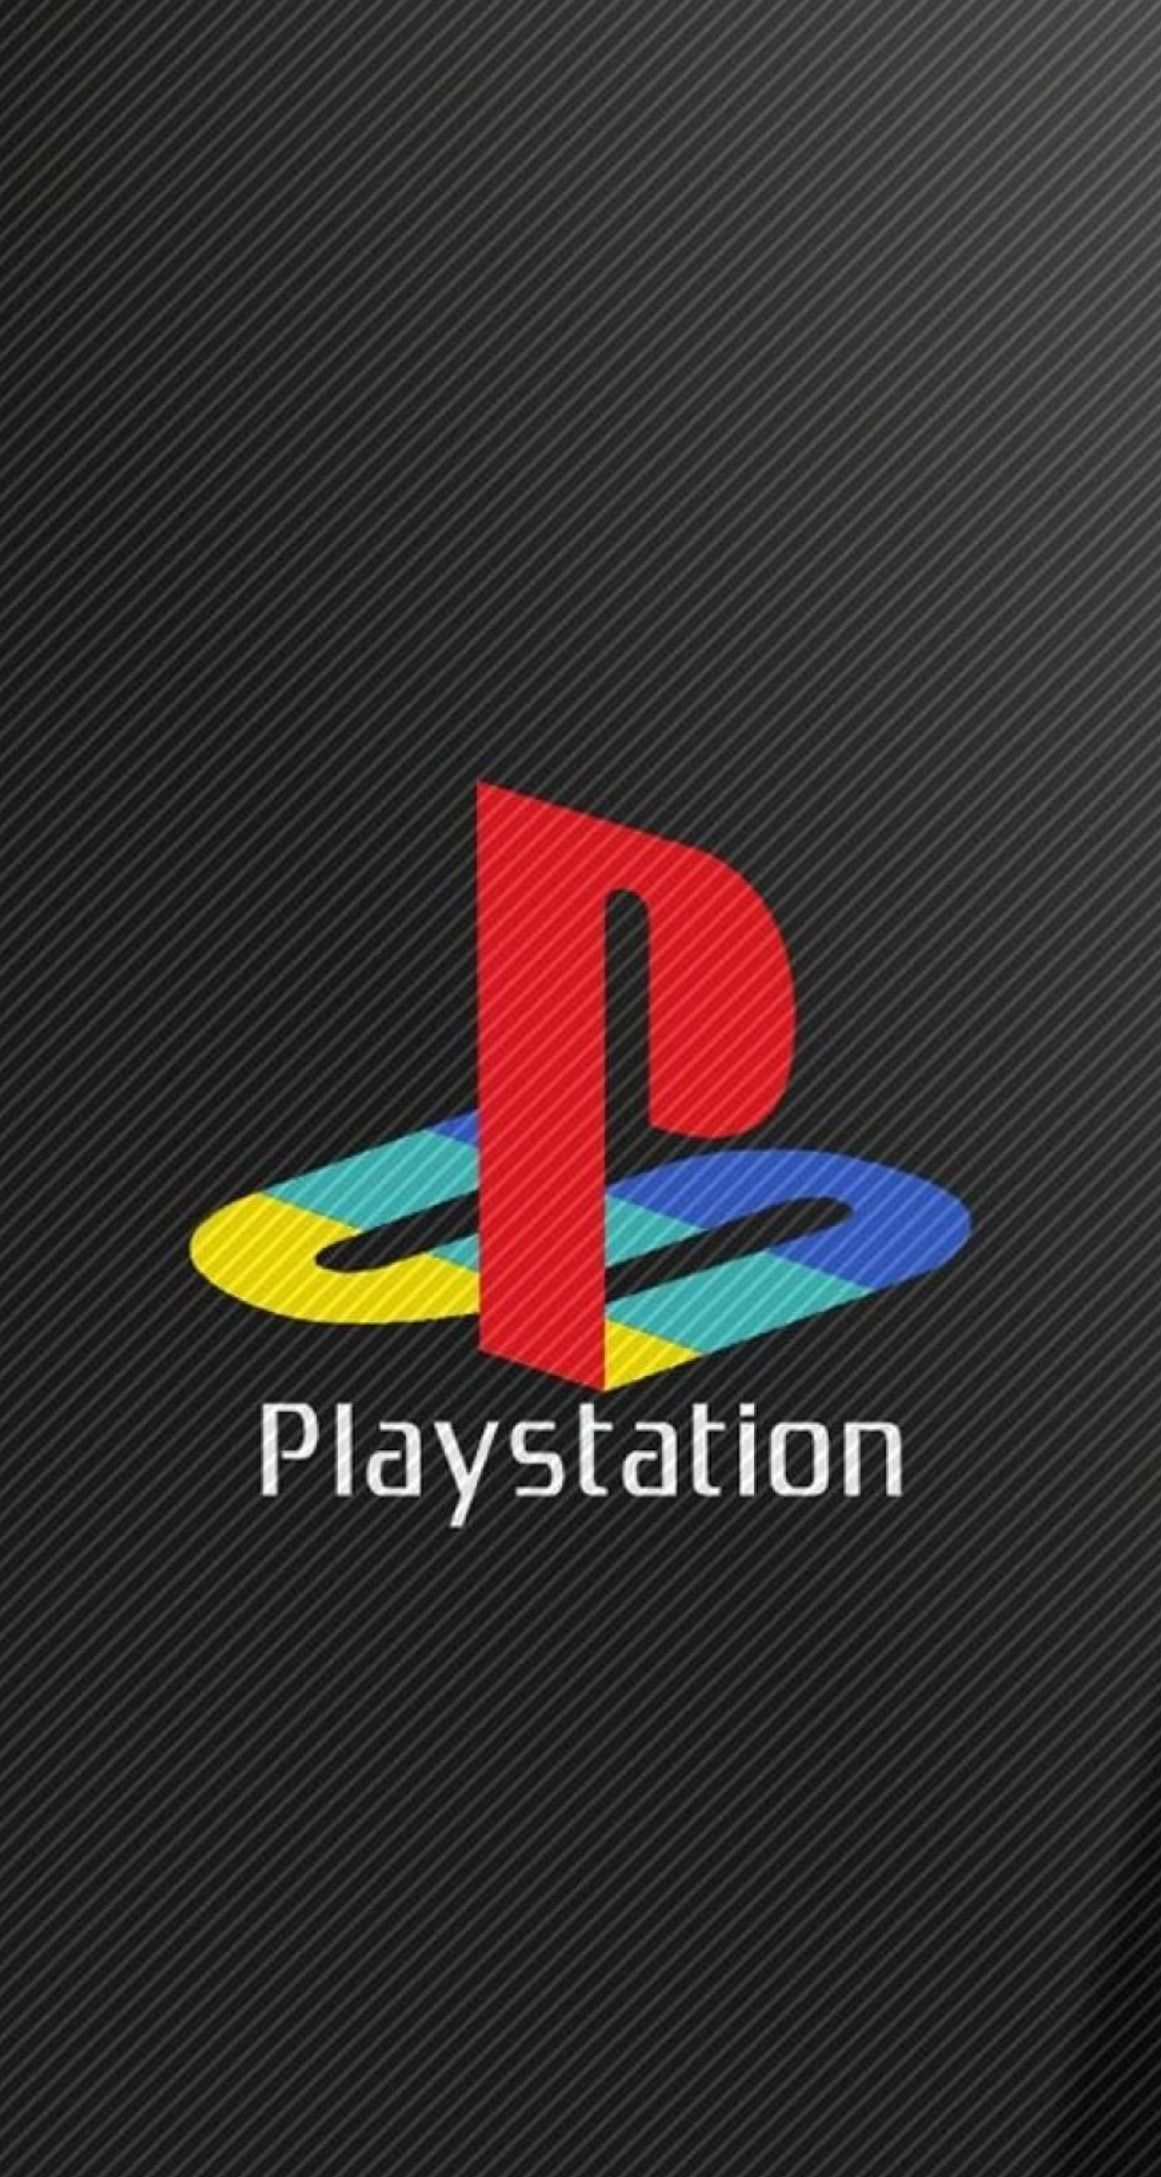 Playstation Iphone Wallpapers Top Free Playstation Iphone Backgrounds Wallpaperaccess